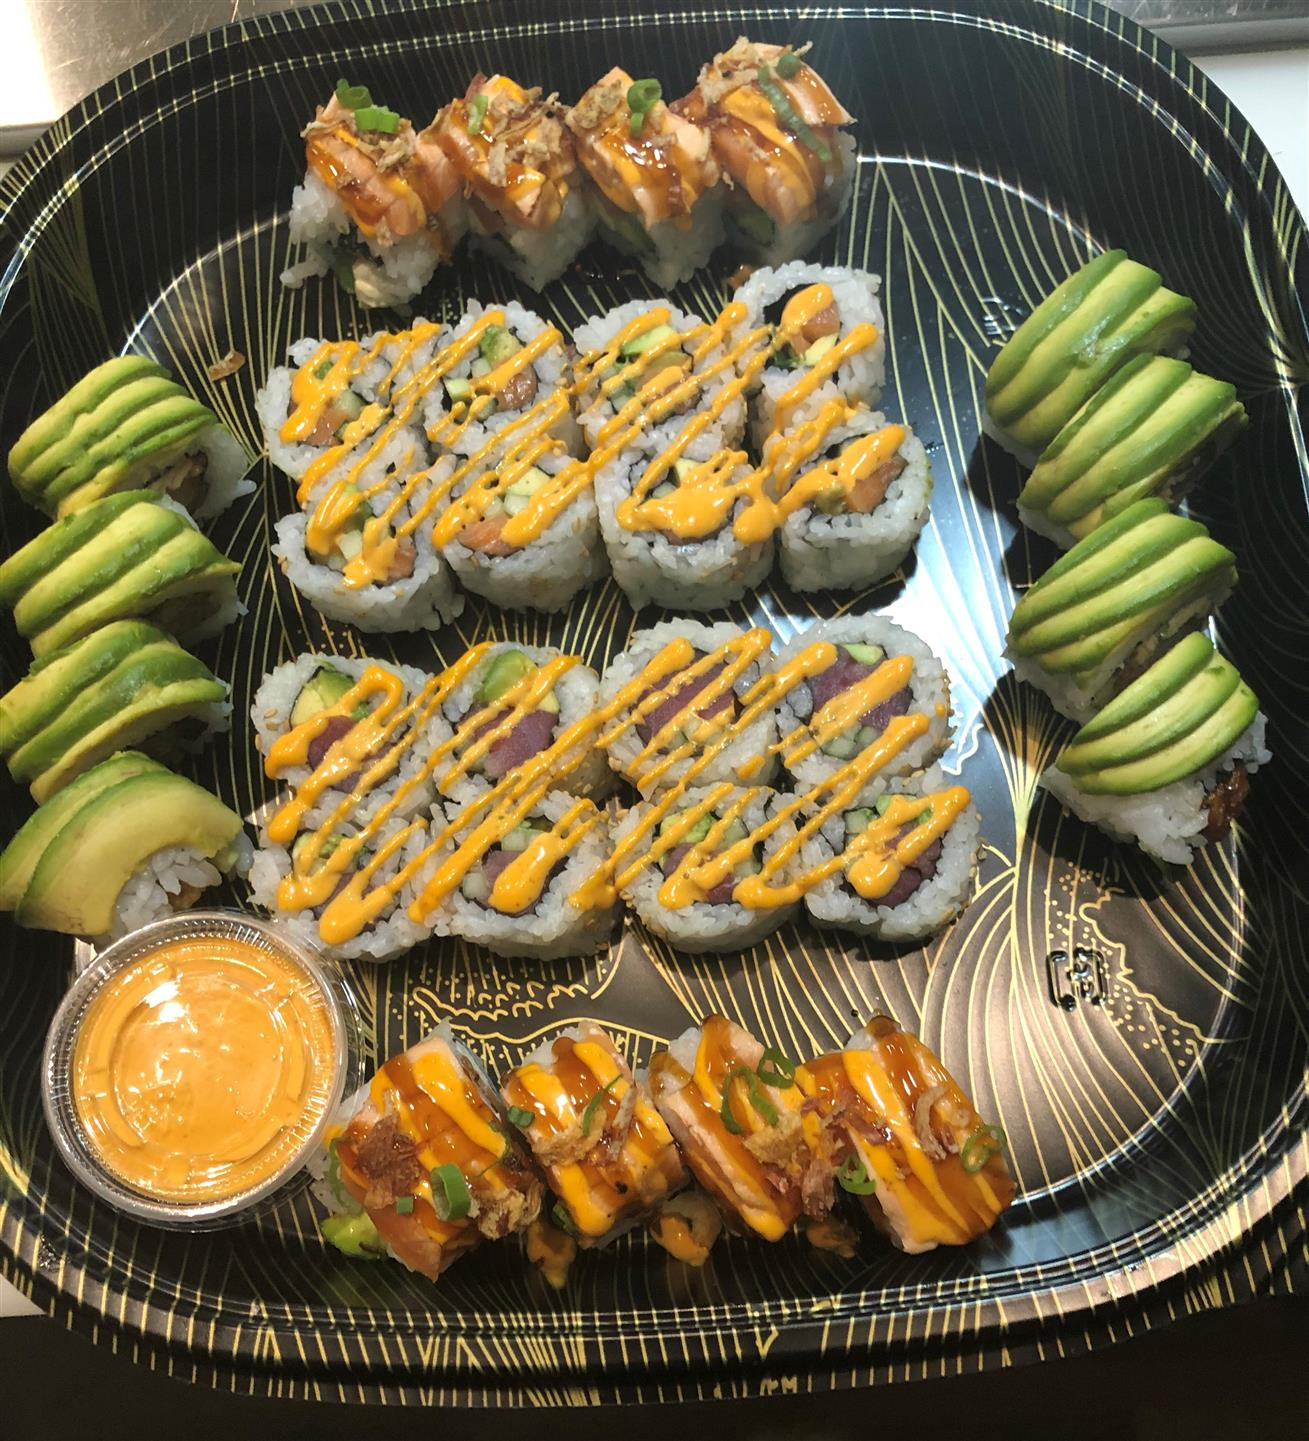 sushi platter with a side of dipping sauce